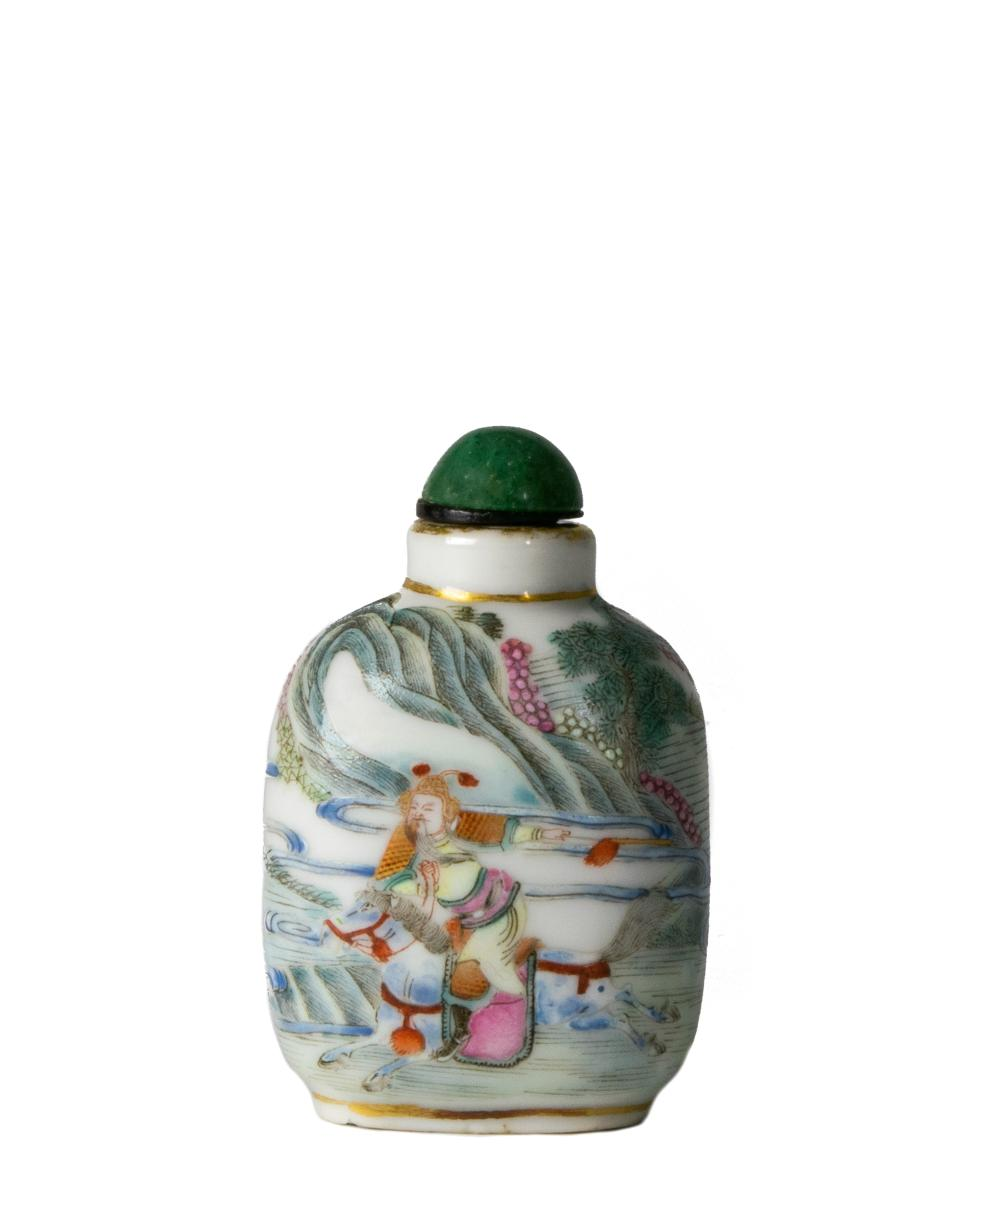 Lot 653: CHINESE FAMILLE ROSE SNUFF BOTTLE, 19TH CENTURY